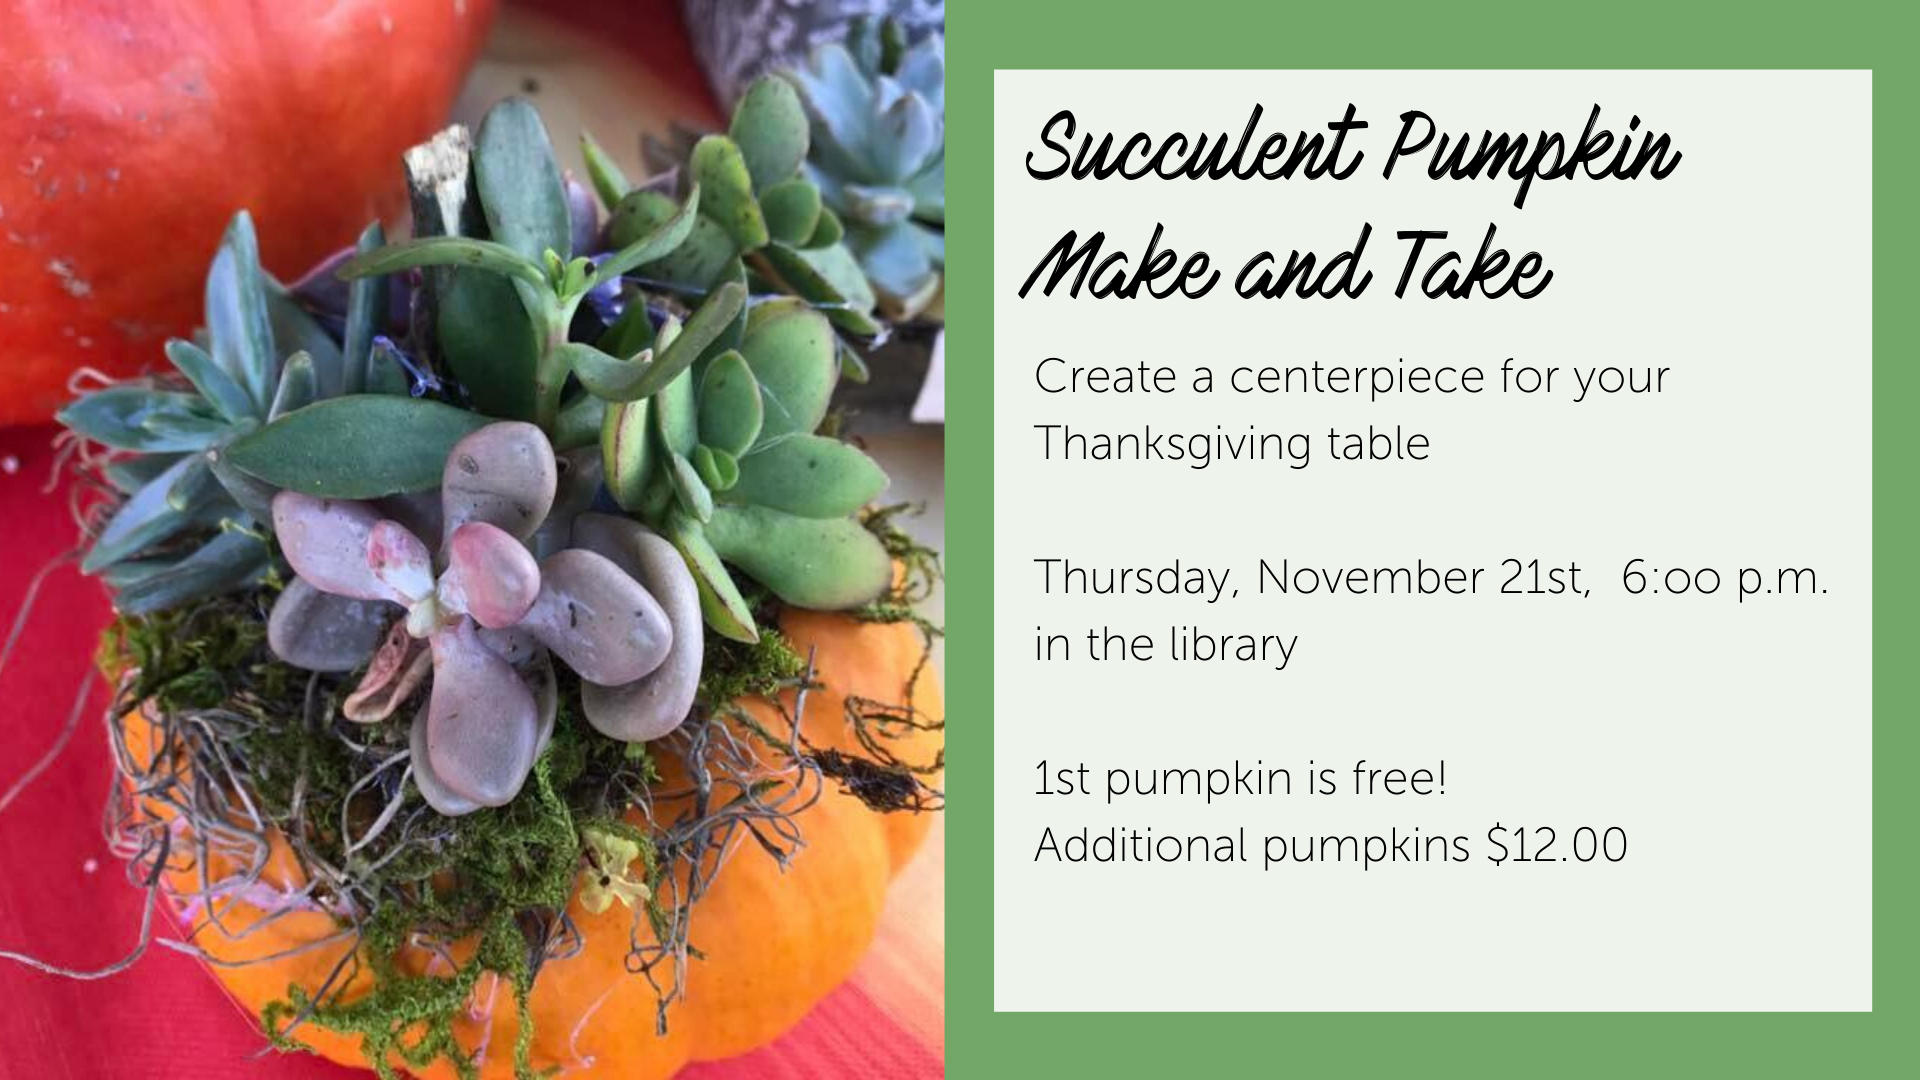 Succulent Pumpking Make and Take